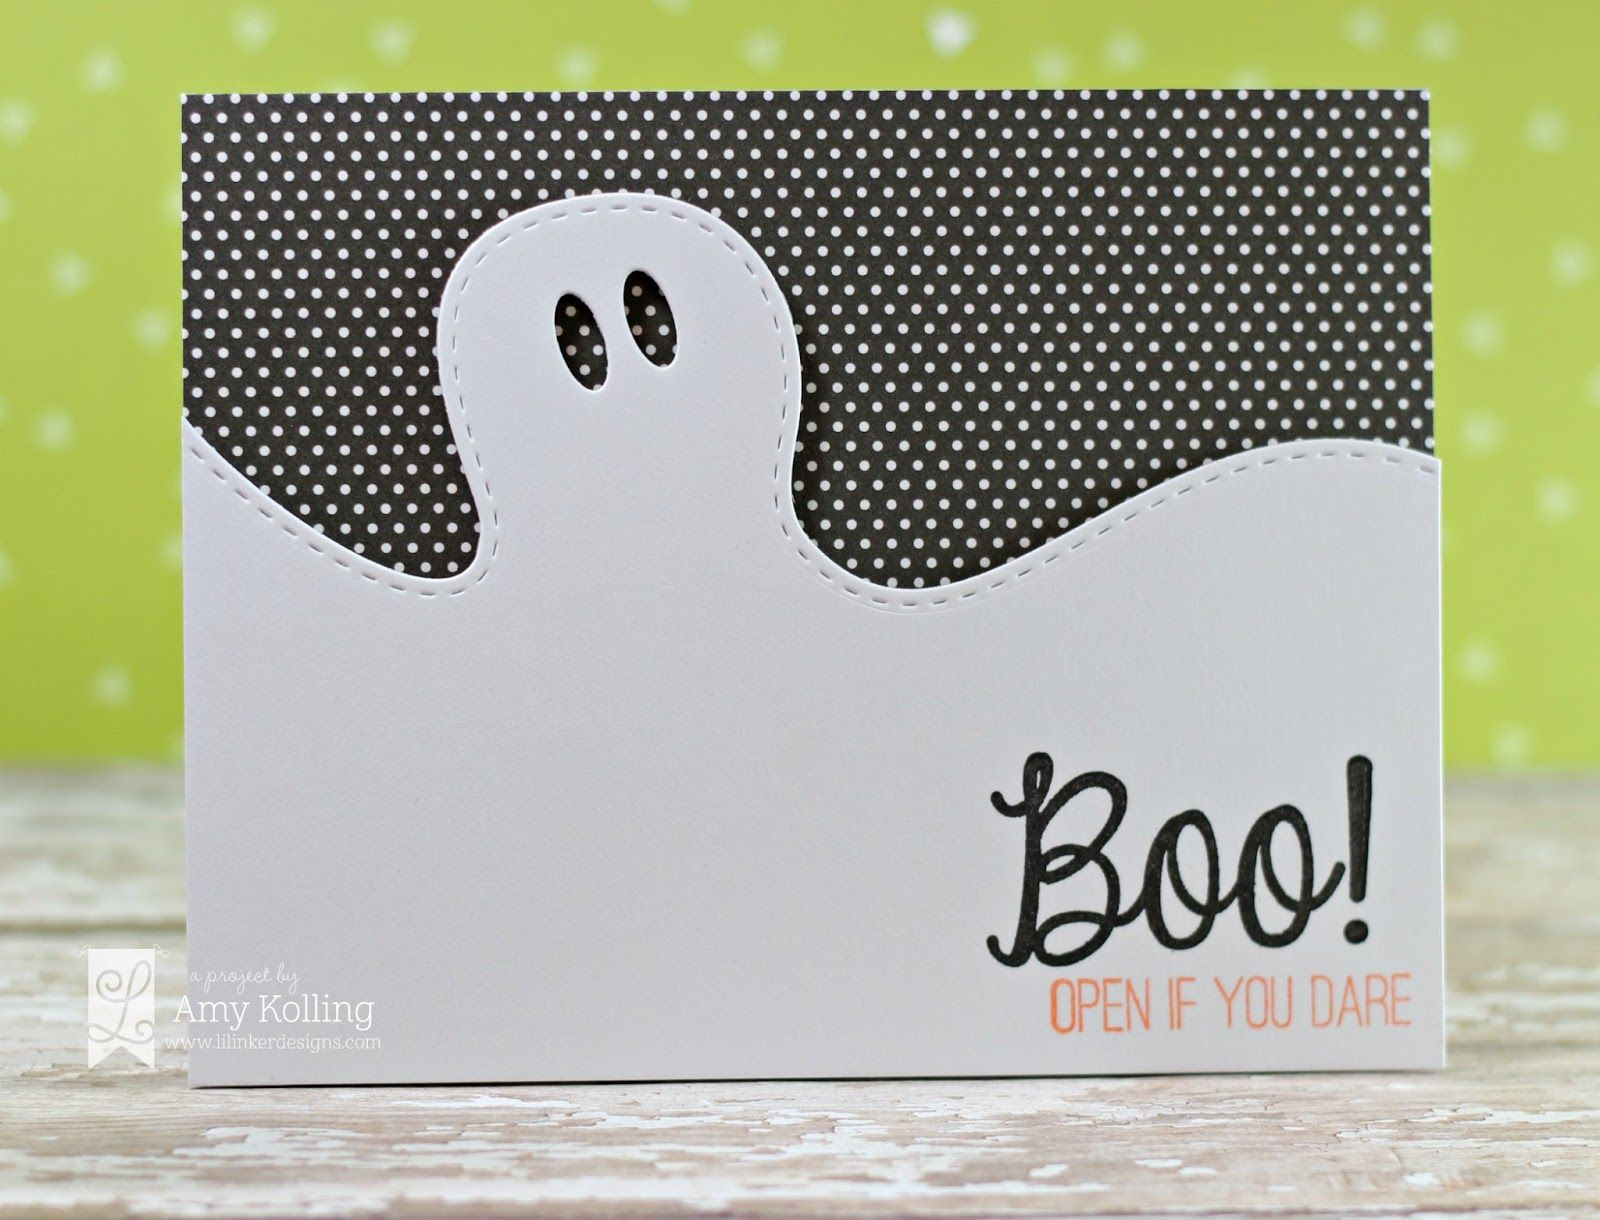 Superior Halloween Cards To Make Ideas Part - 11: Handmade Halloween Card From Lilu0027 Inker Designs ... Clean And Simple .